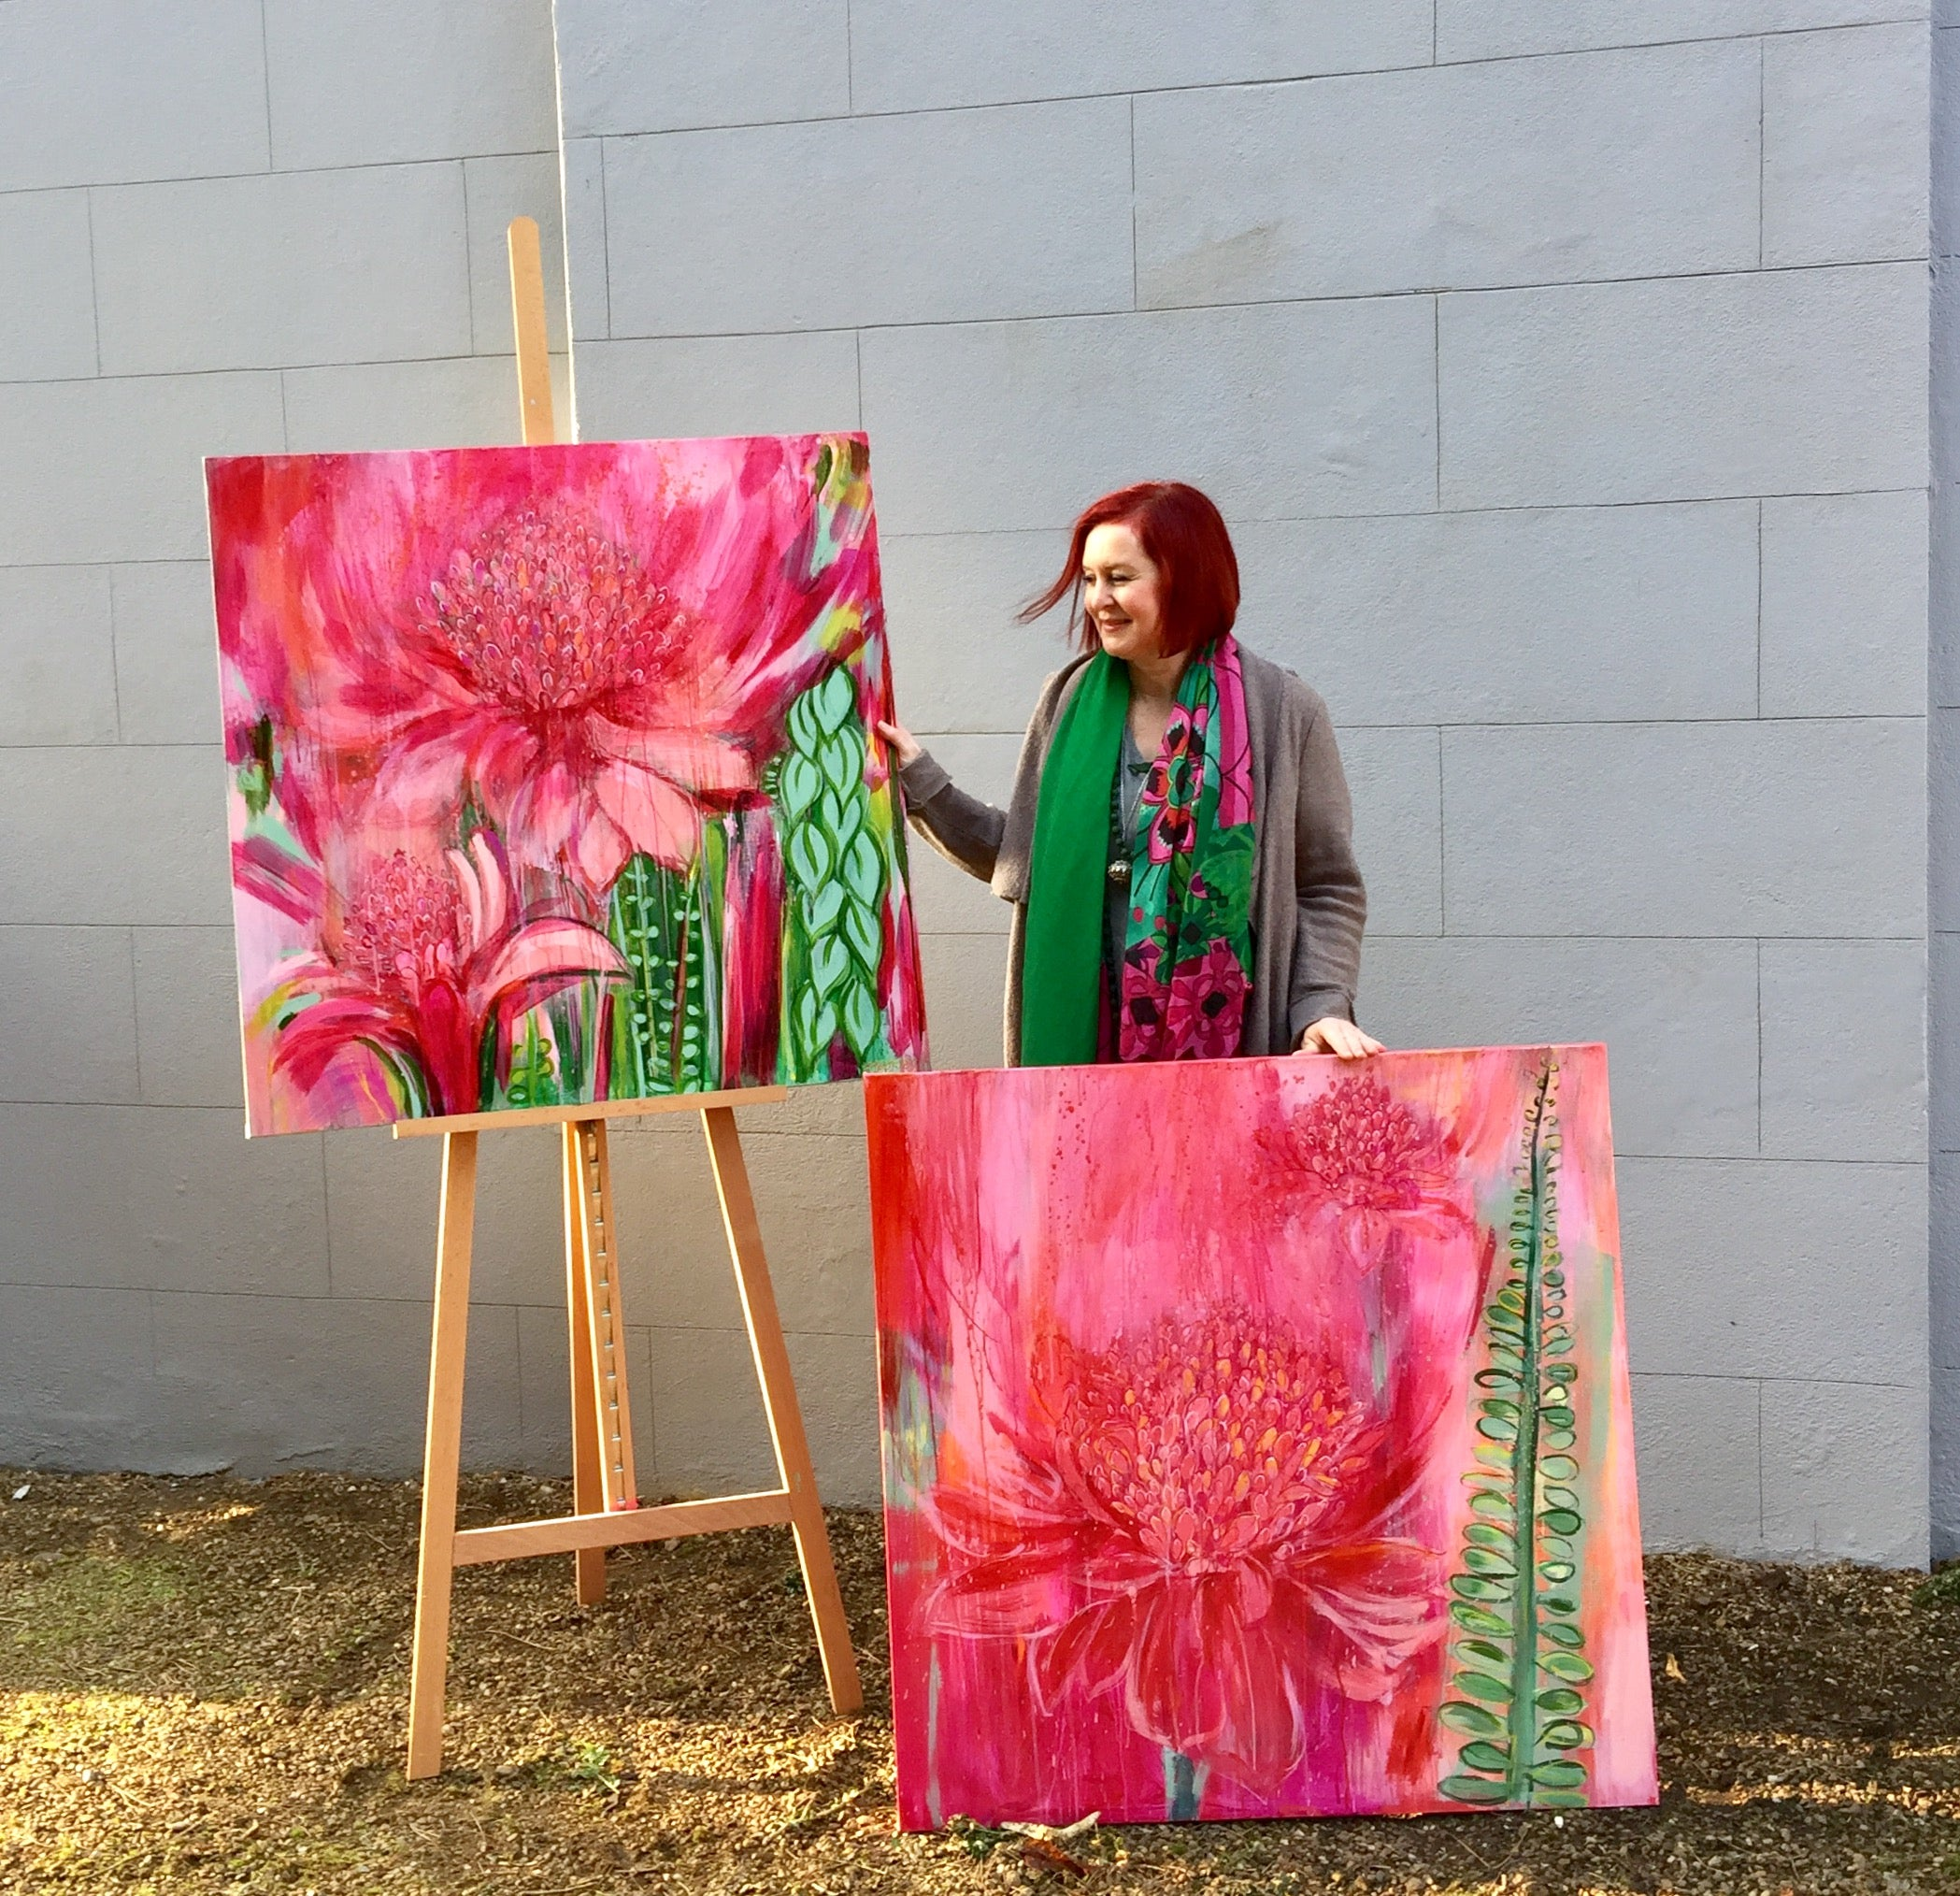 magenta-gingerlily-paintings-portrait